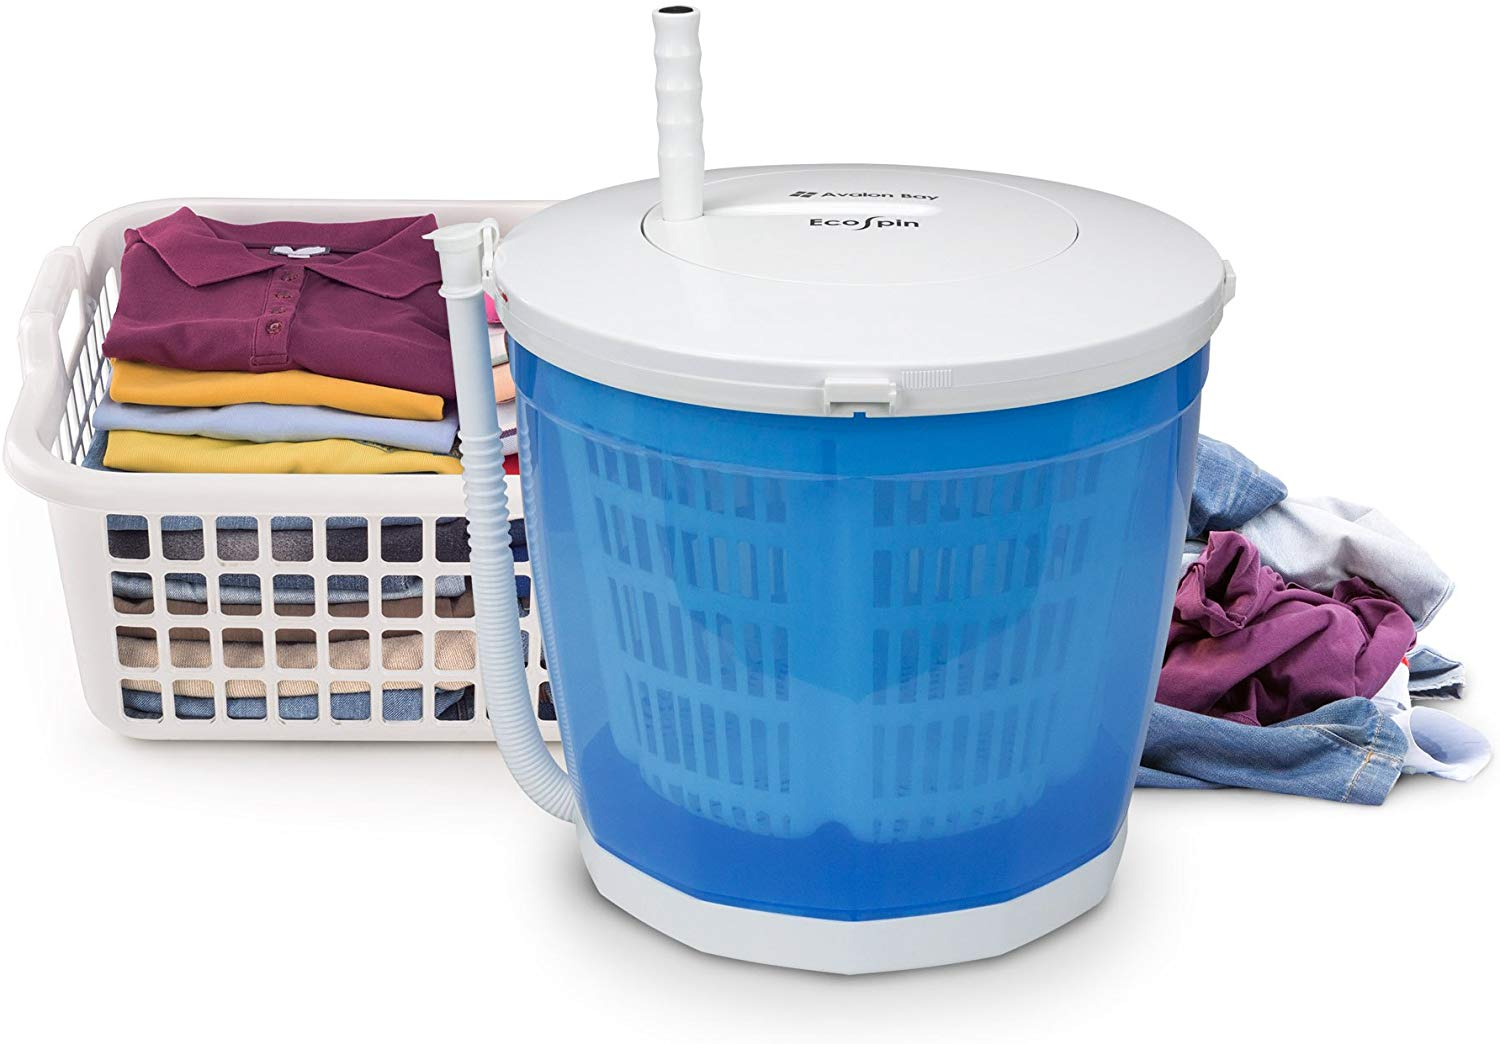 avalon bay ecospin portable spin dryer image